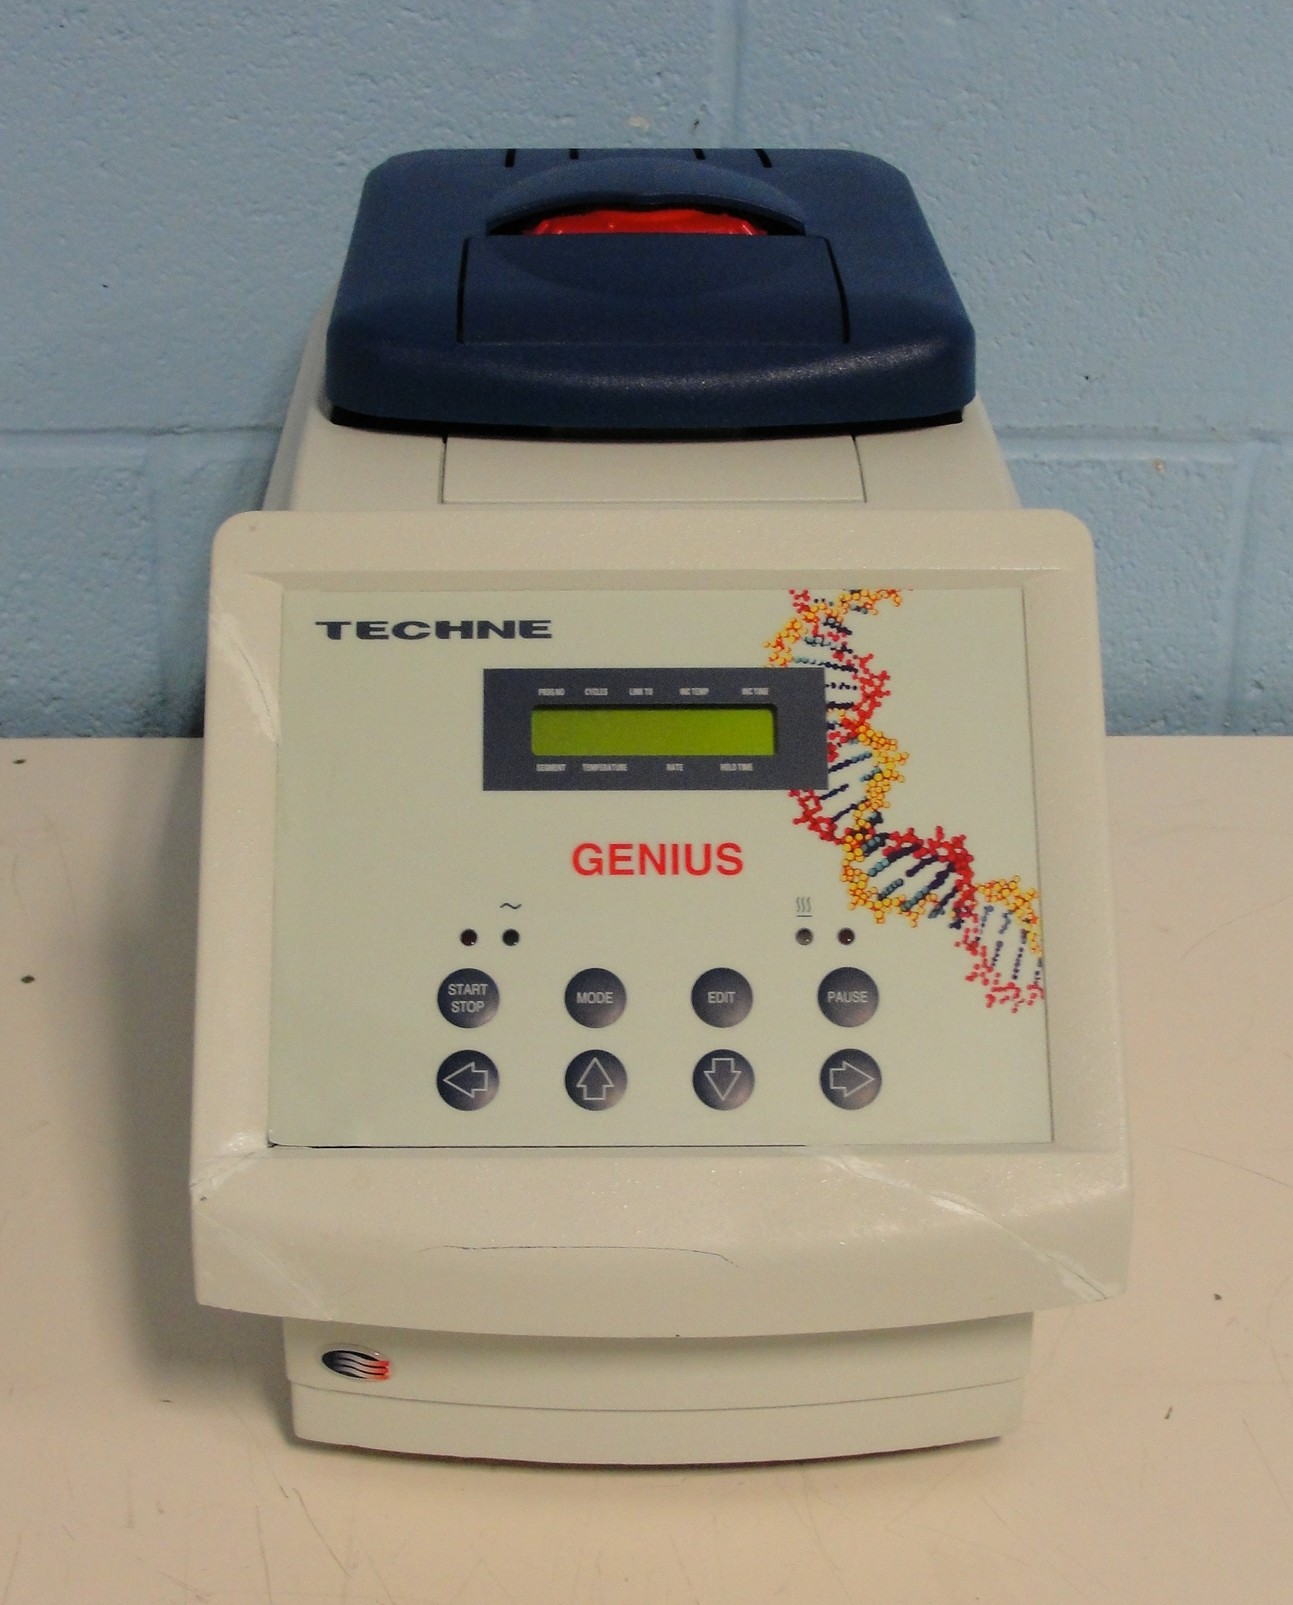 Techne Genius PCR Thermal Cycler Model FGEN02TP Image